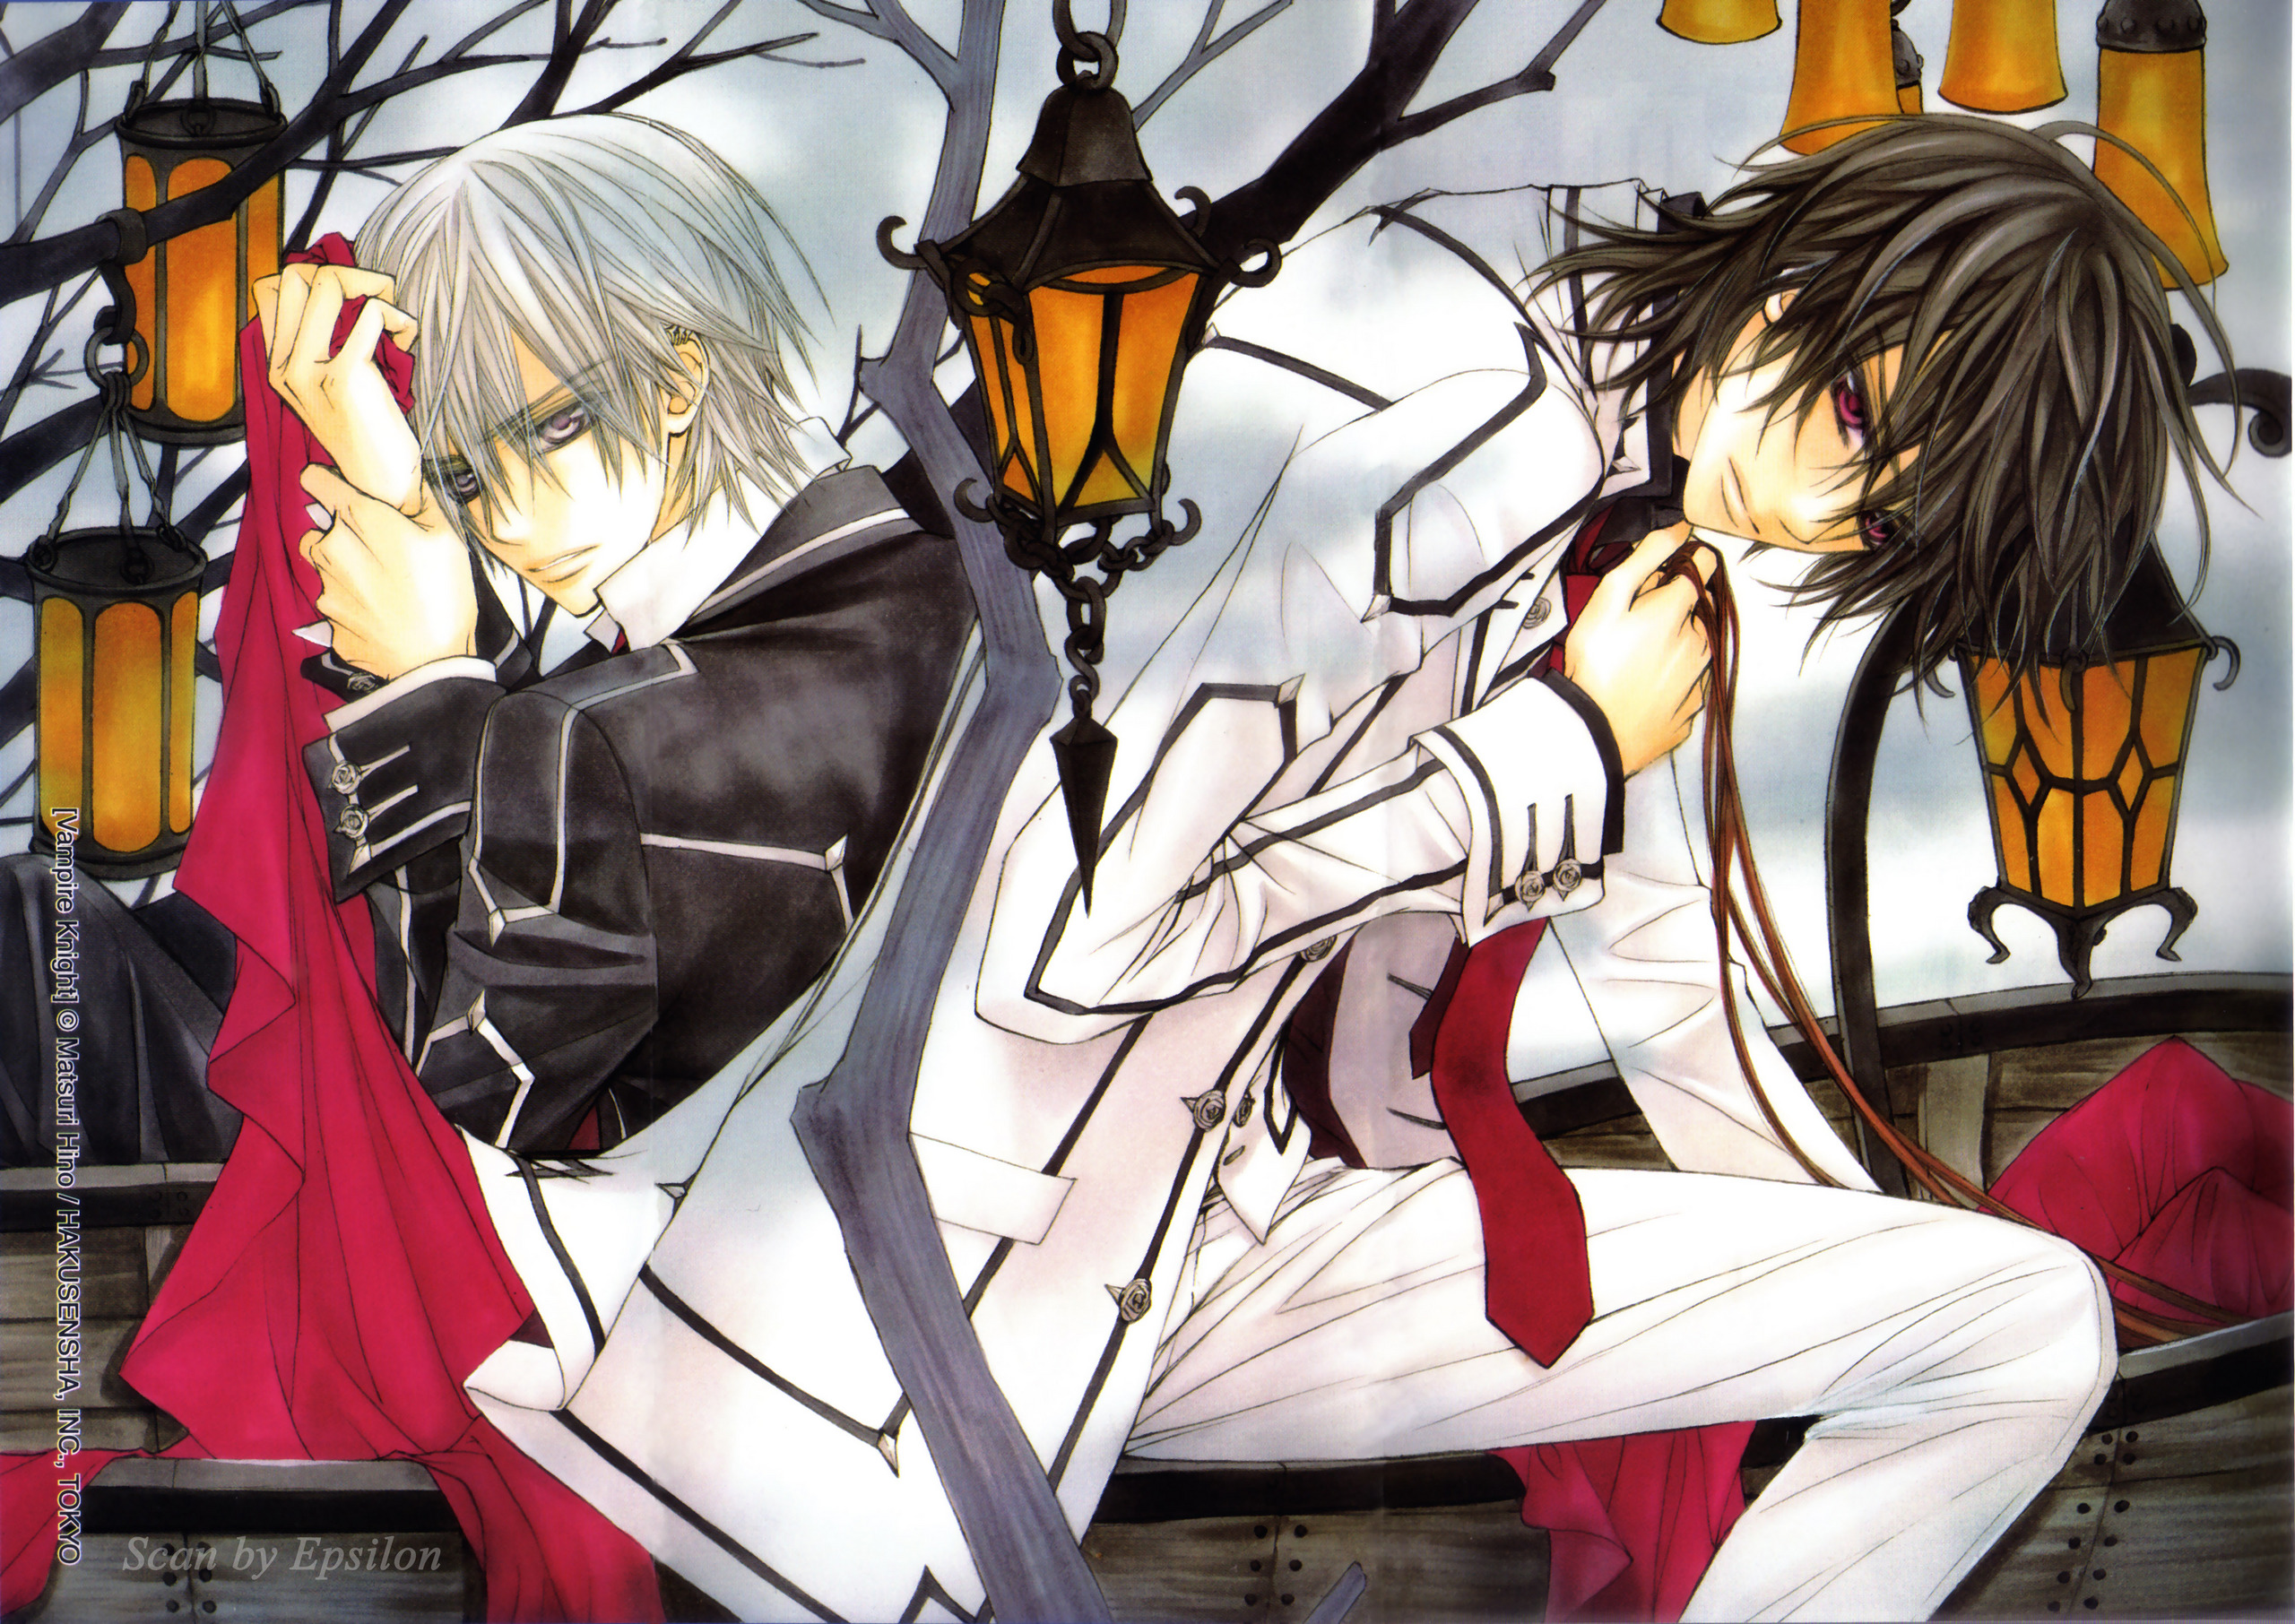 Zero-and-Kaname-vampire-knight-ending-waiting-30210713-2560-1812 jpgZero And Kaname Vampire Knight